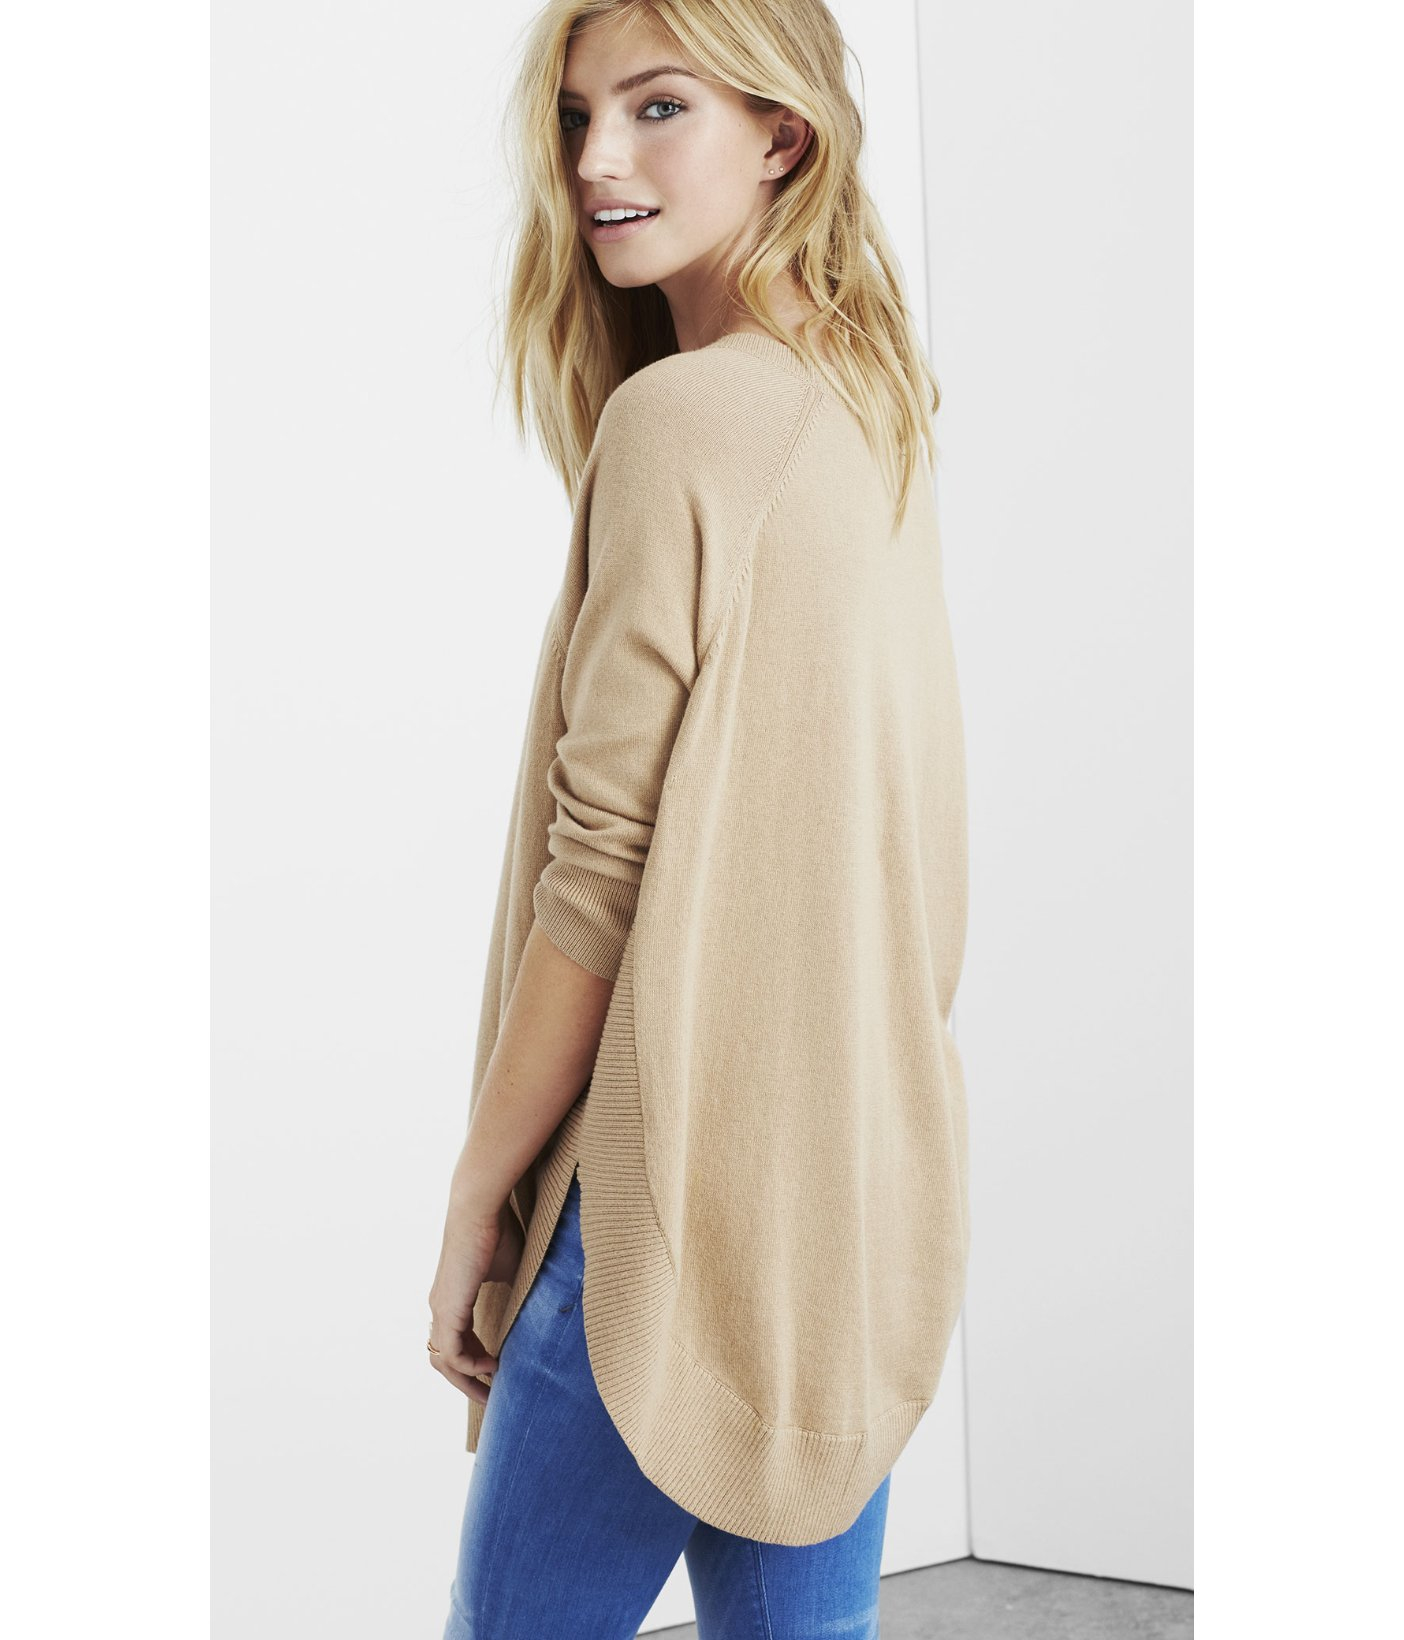 Express Extreme Circle Hem Tunic Sweater in Natural | Lyst